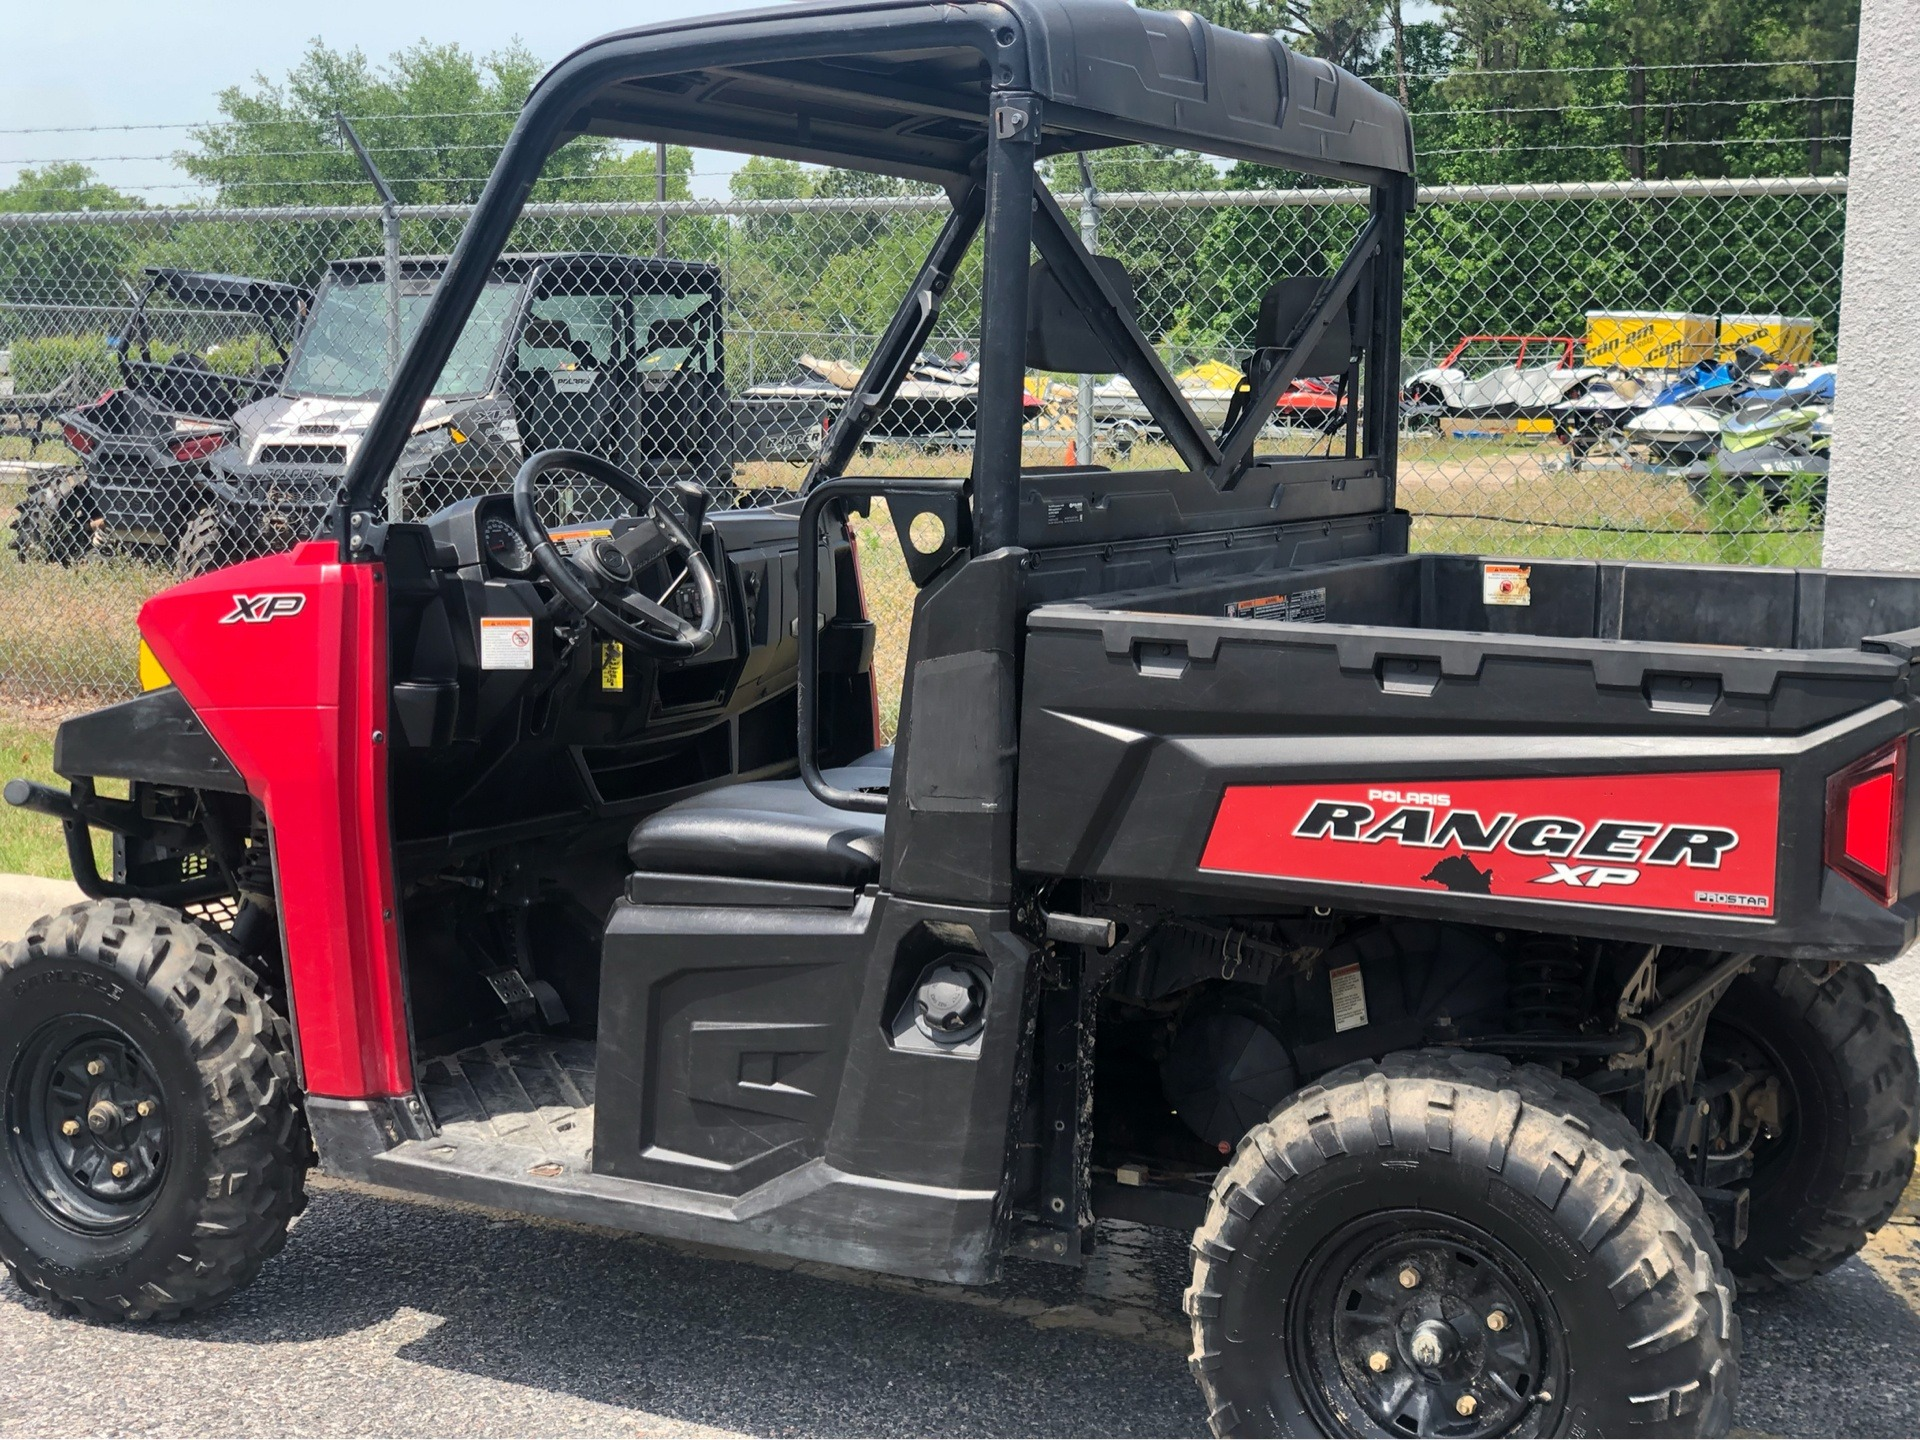 2015 Polaris Ranger >> Used 2015 Polaris Ranger Xp 900 Eps Utility Vehicles In Savannah